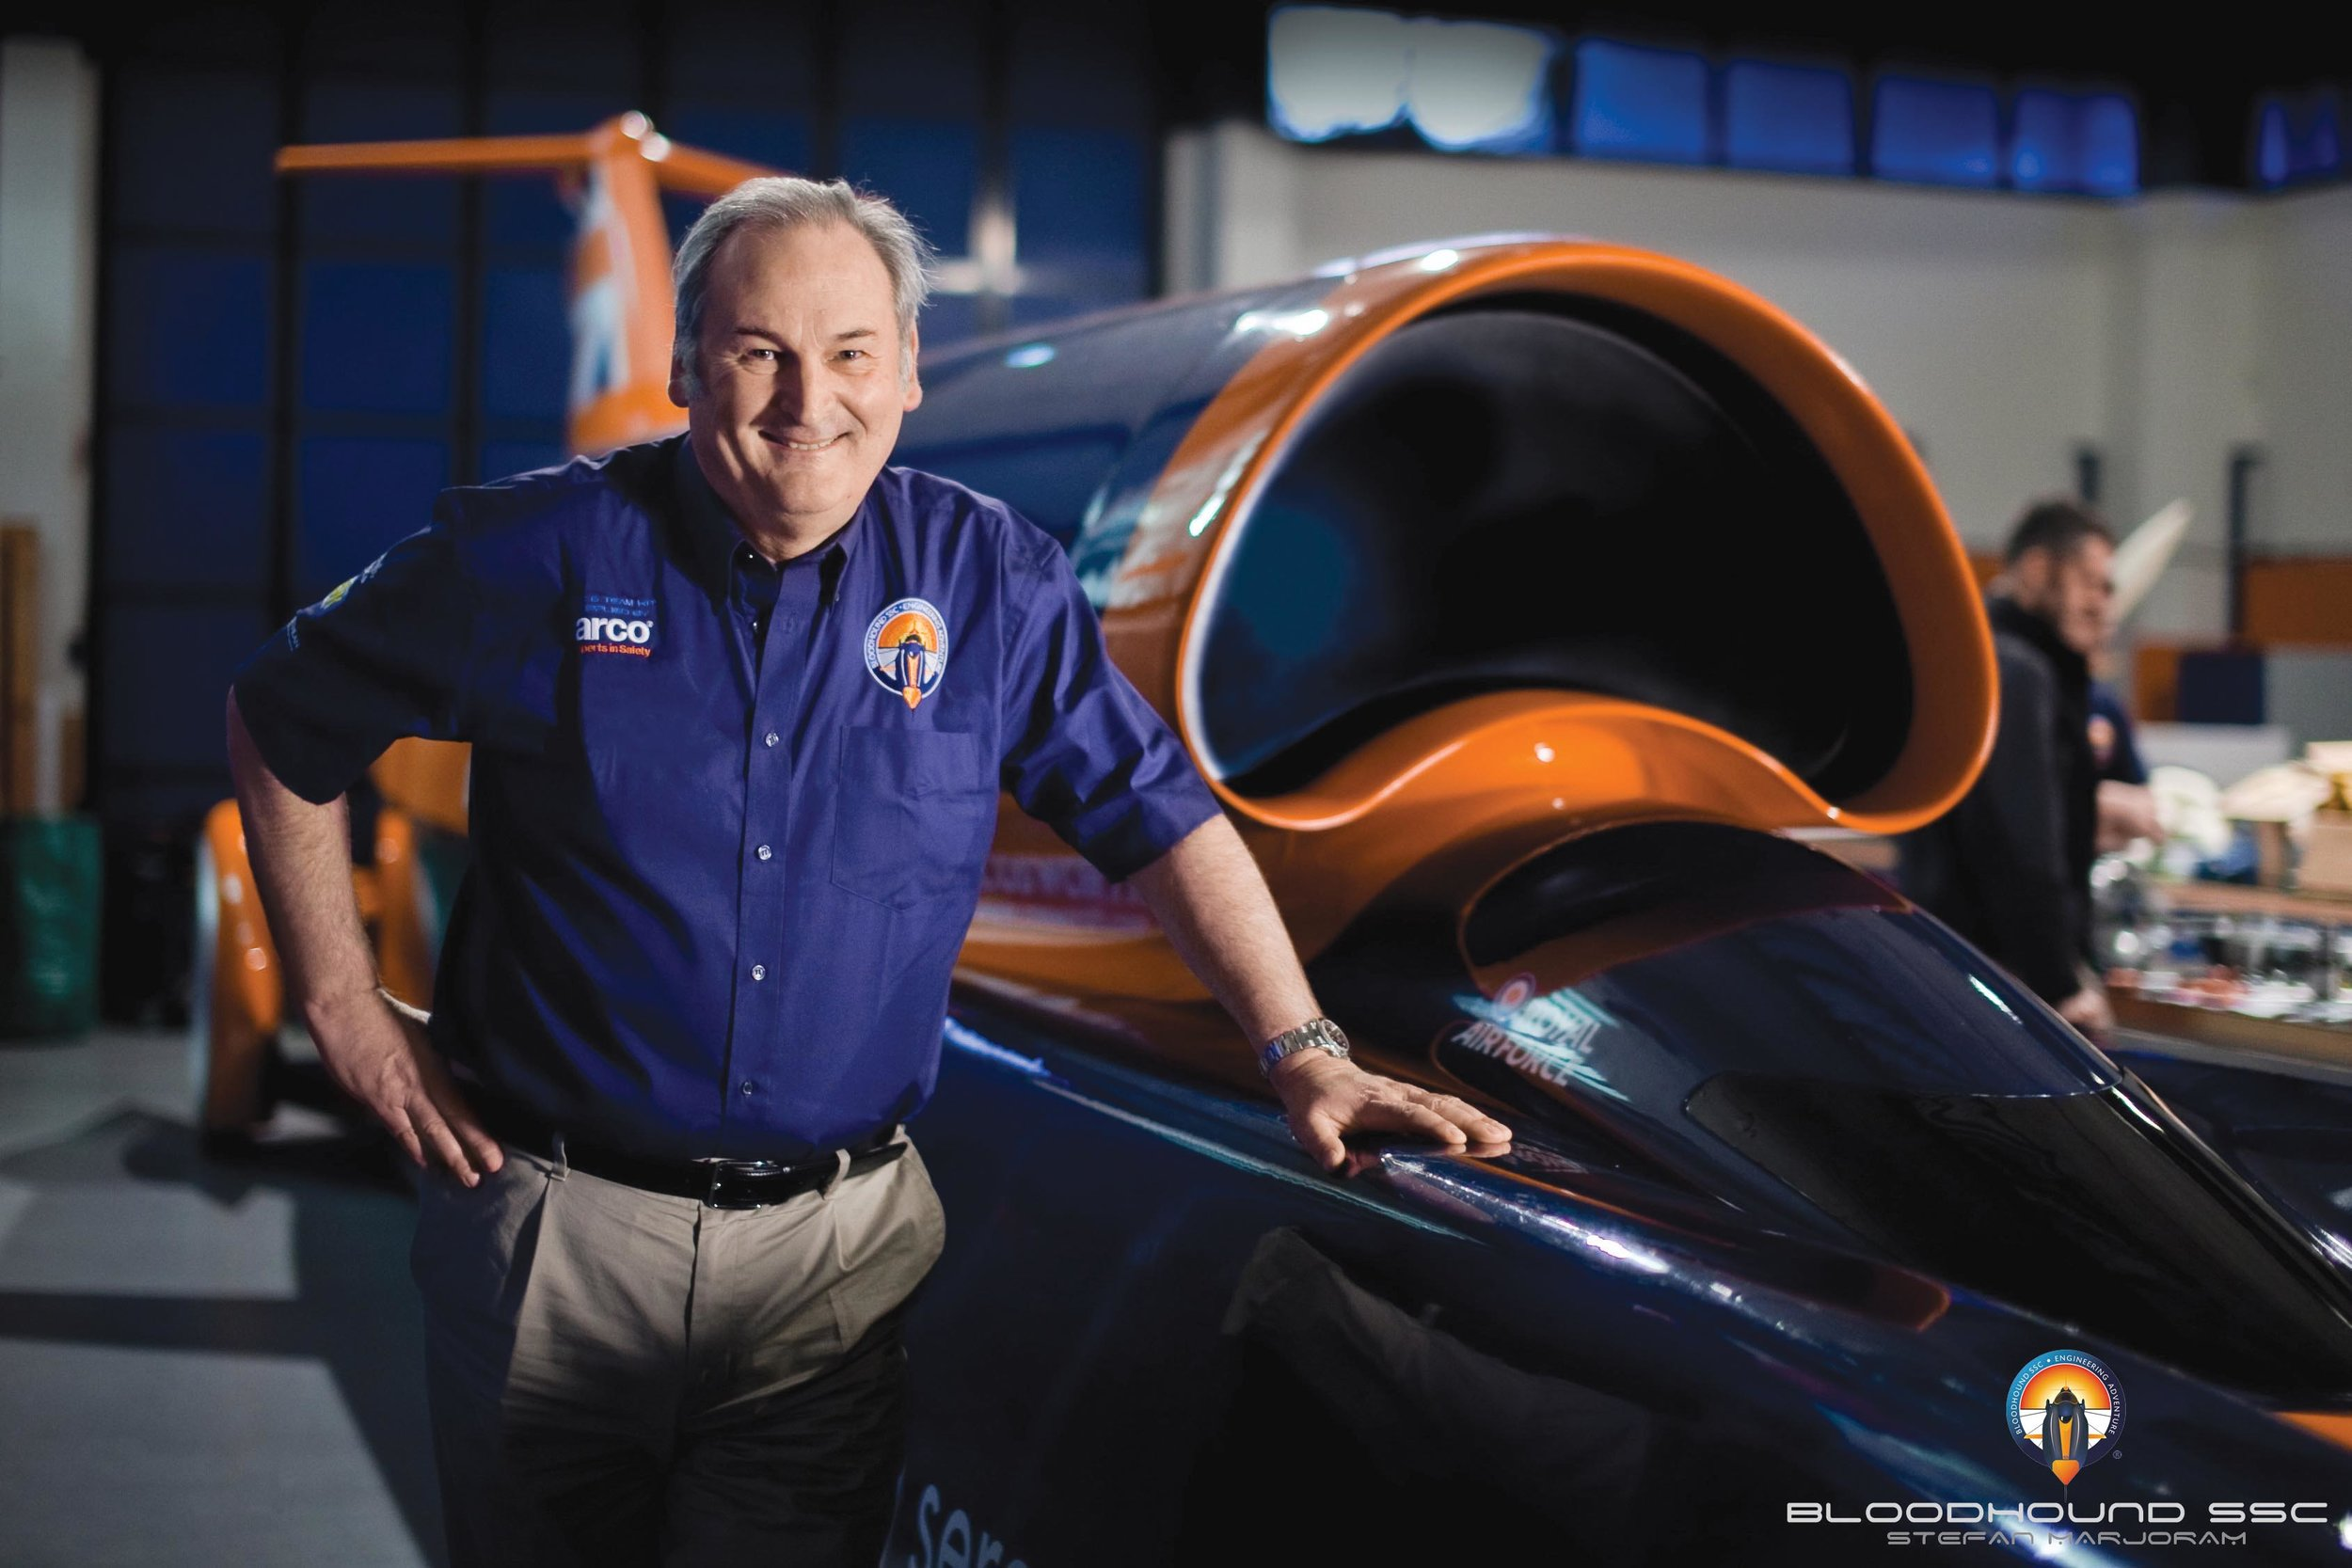 Richard Noble, Bloodhound's project director